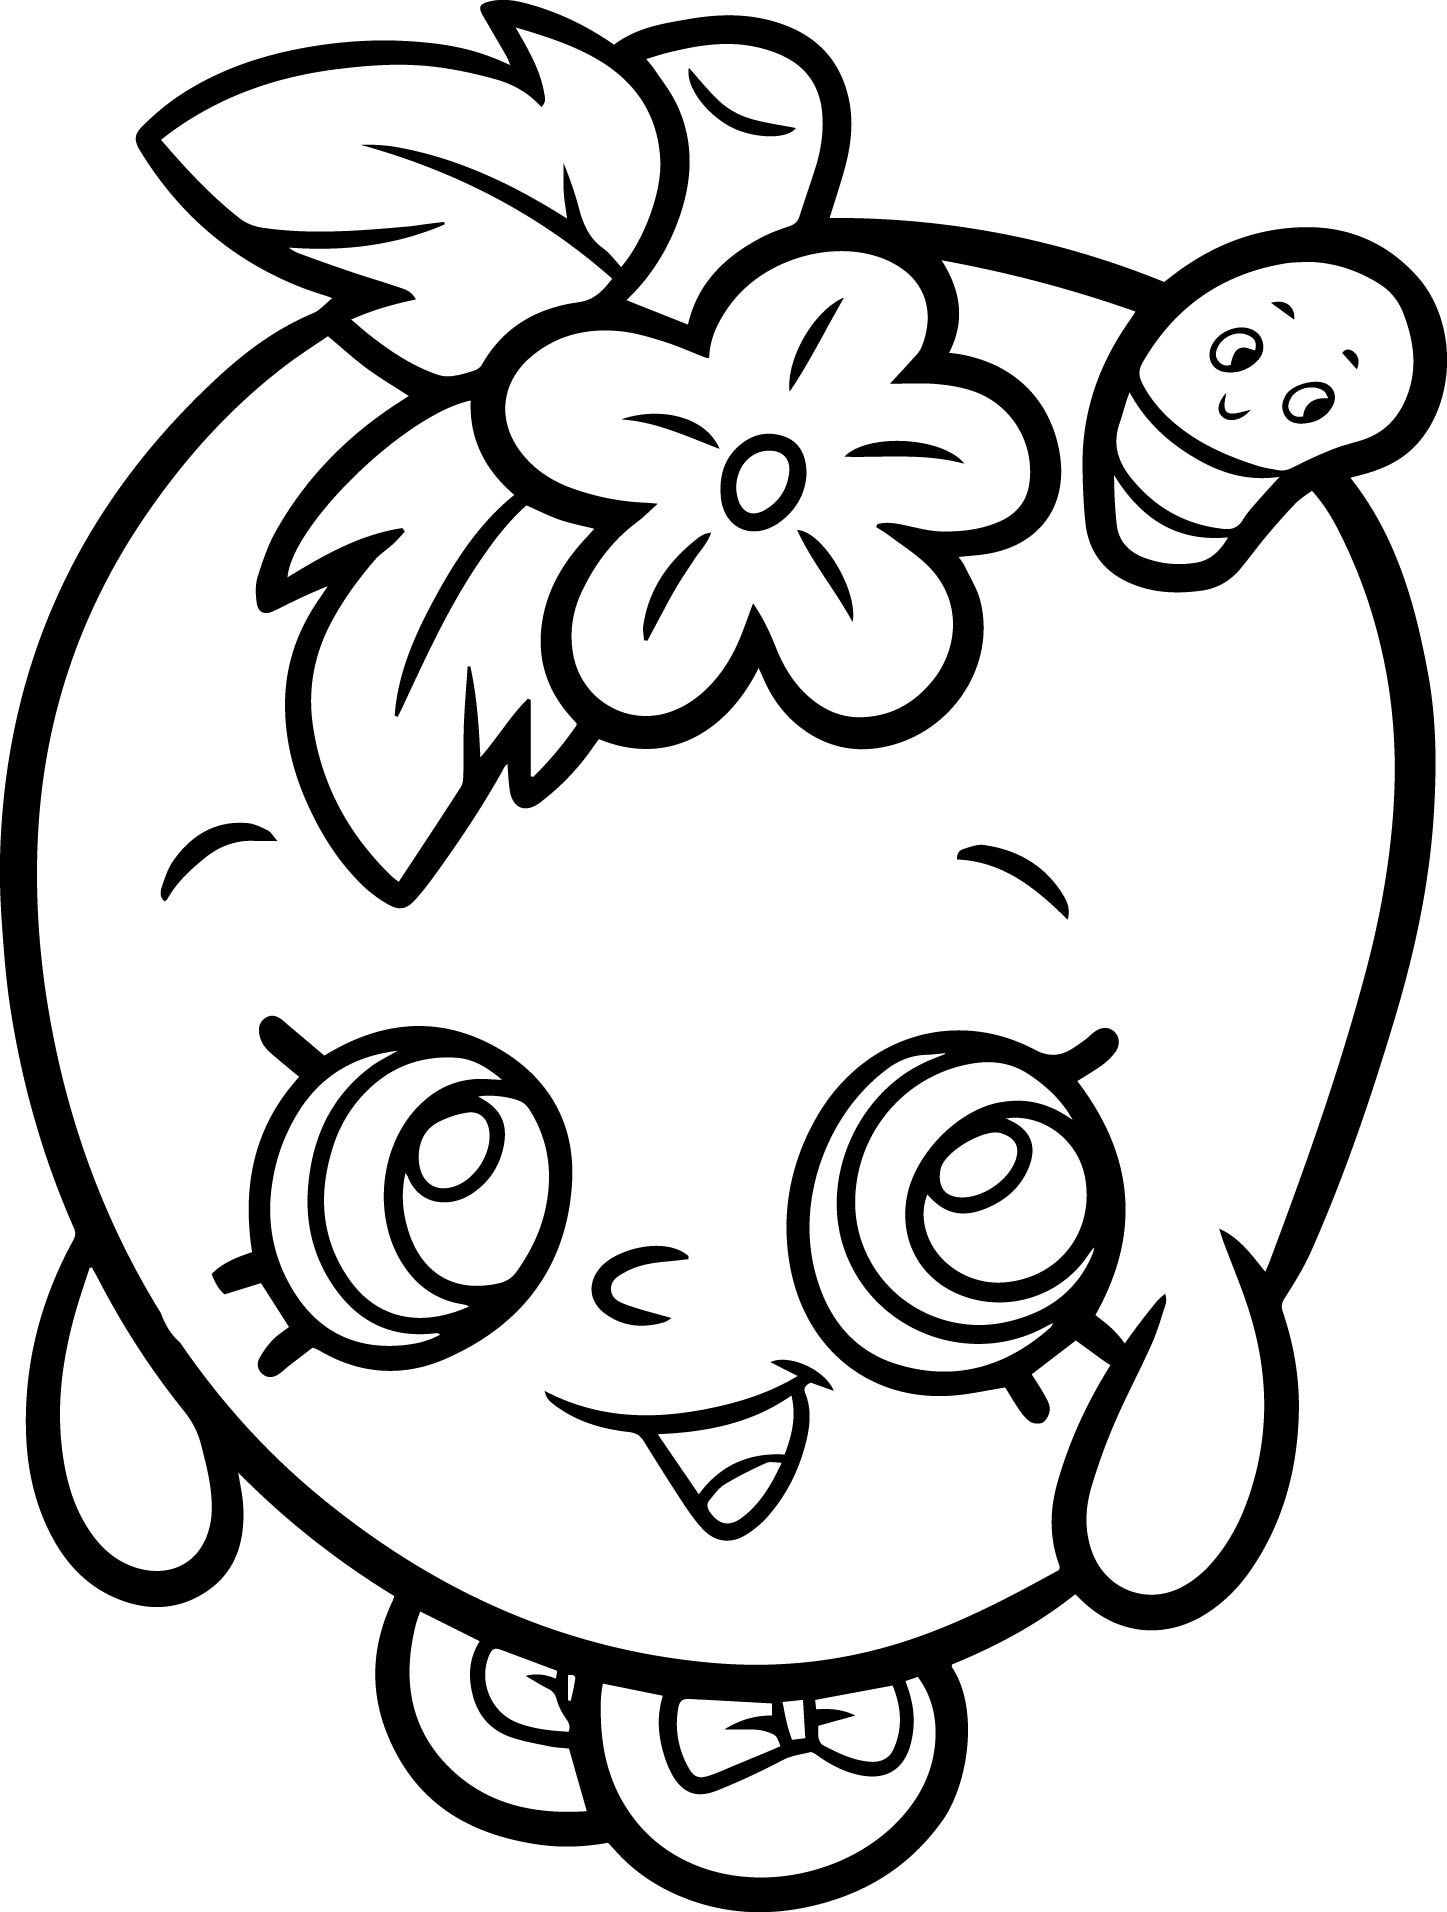 Apple Blossom From Shopkins Coloring Page Shopkins Colouring Pages Emoji Coloring Pages Apple Coloring Pages